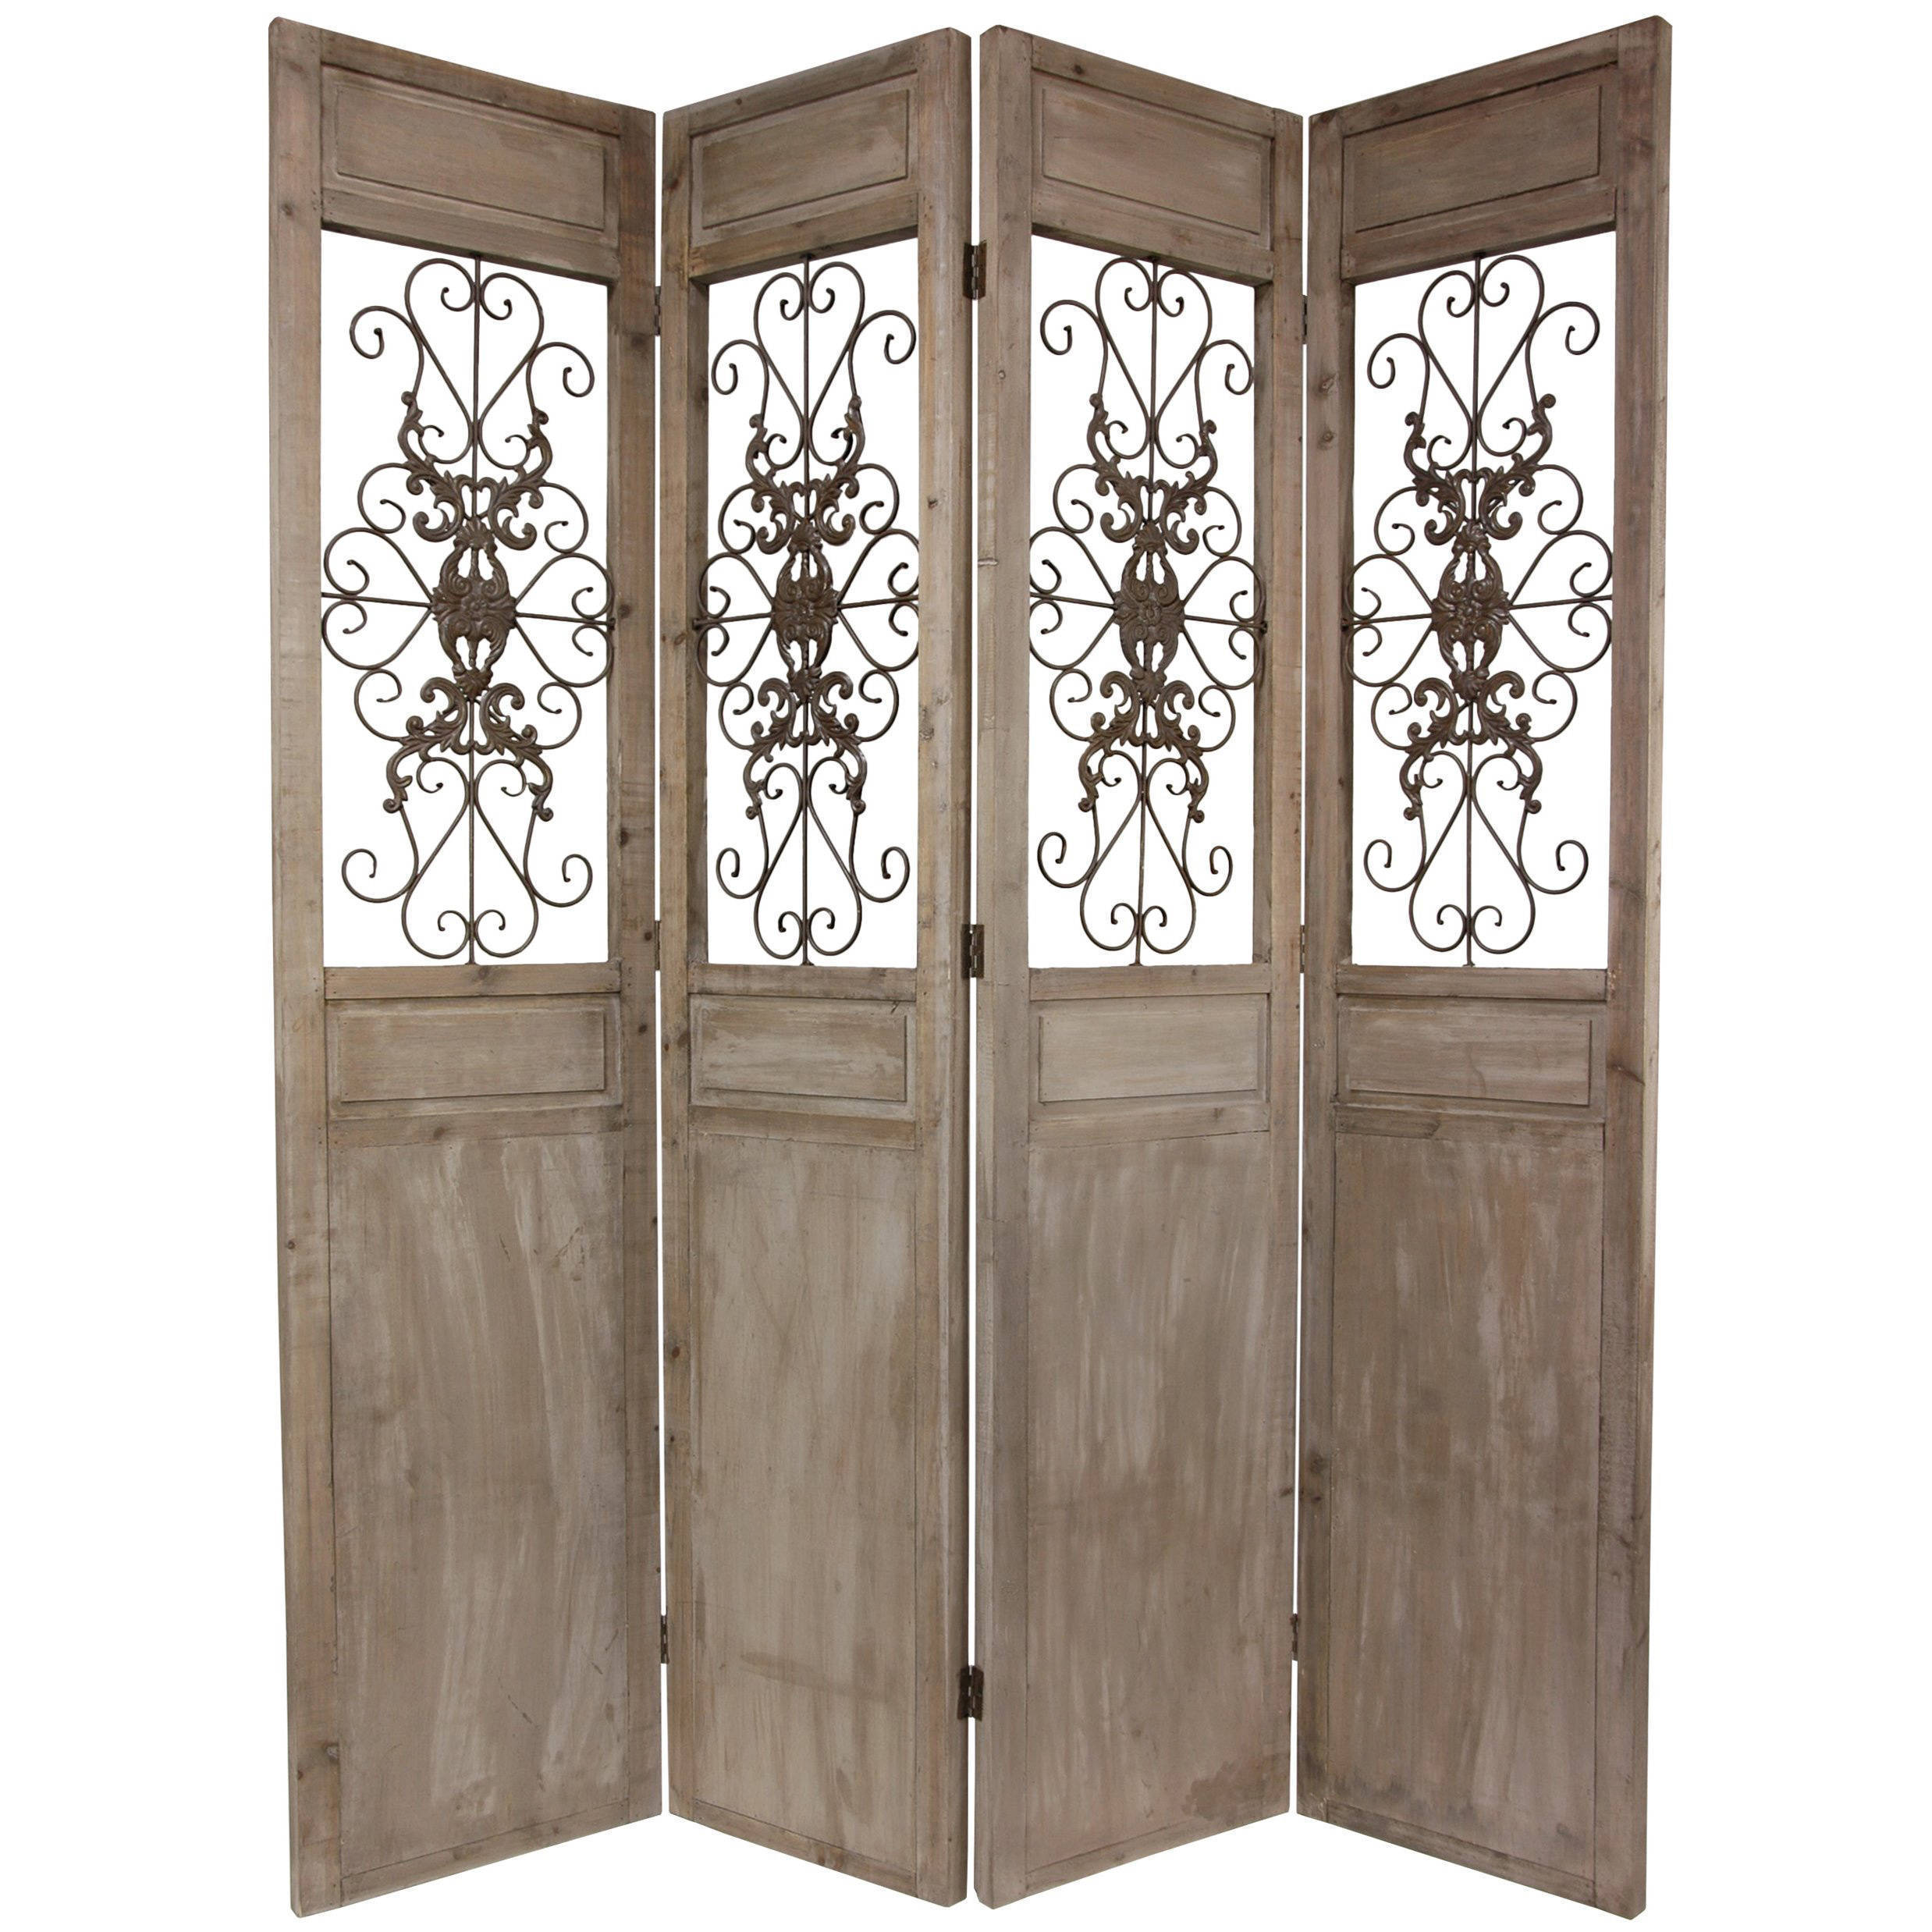 wall iron photos dividers divider room wood chinese screens floor enchanting home separator amazon wrought plan white designs